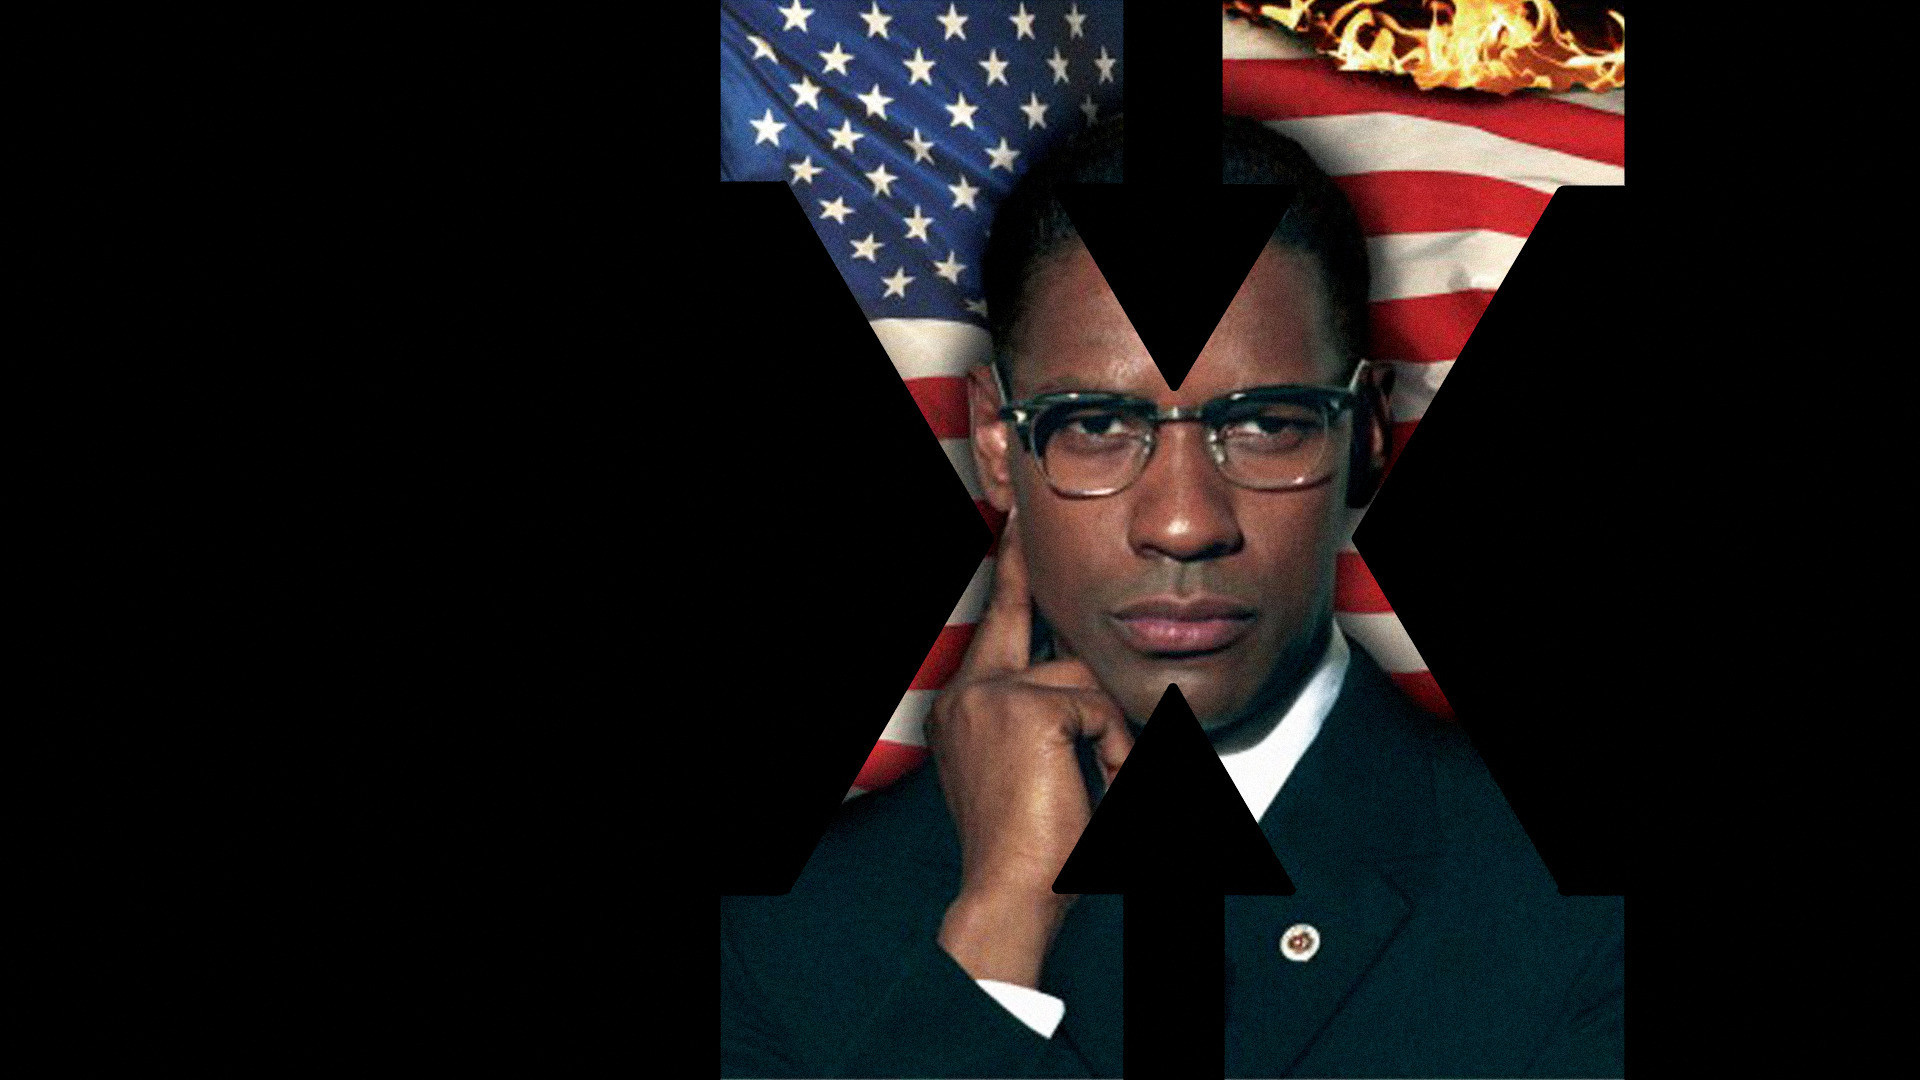 malcolm x 1992 film review Malcolm x blu-ray (includes 1972  see malcolm x blu-ray review published by kenneth brown on february 2,  1985) and malcolm x (spike lee, 1992.